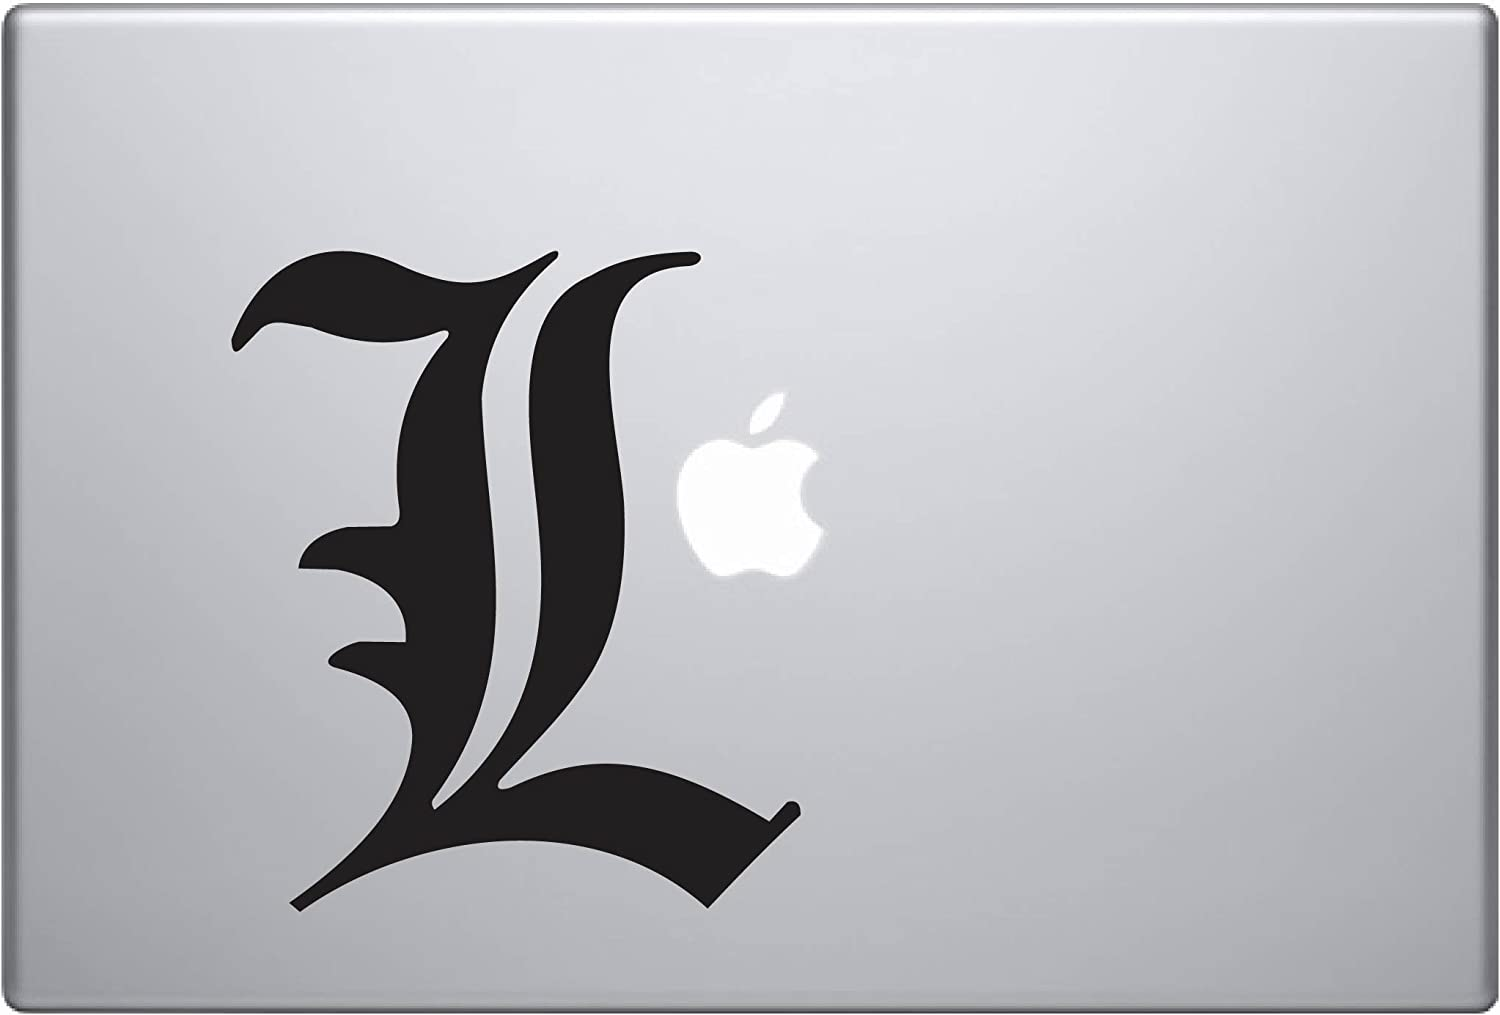 """Death Note L (Black 9"""") Vinyl Decal Sticker for Car Automobile Window Wall Laptop Notebook Etc.... Any Smooth Surface Such As Windows Bumpers"""